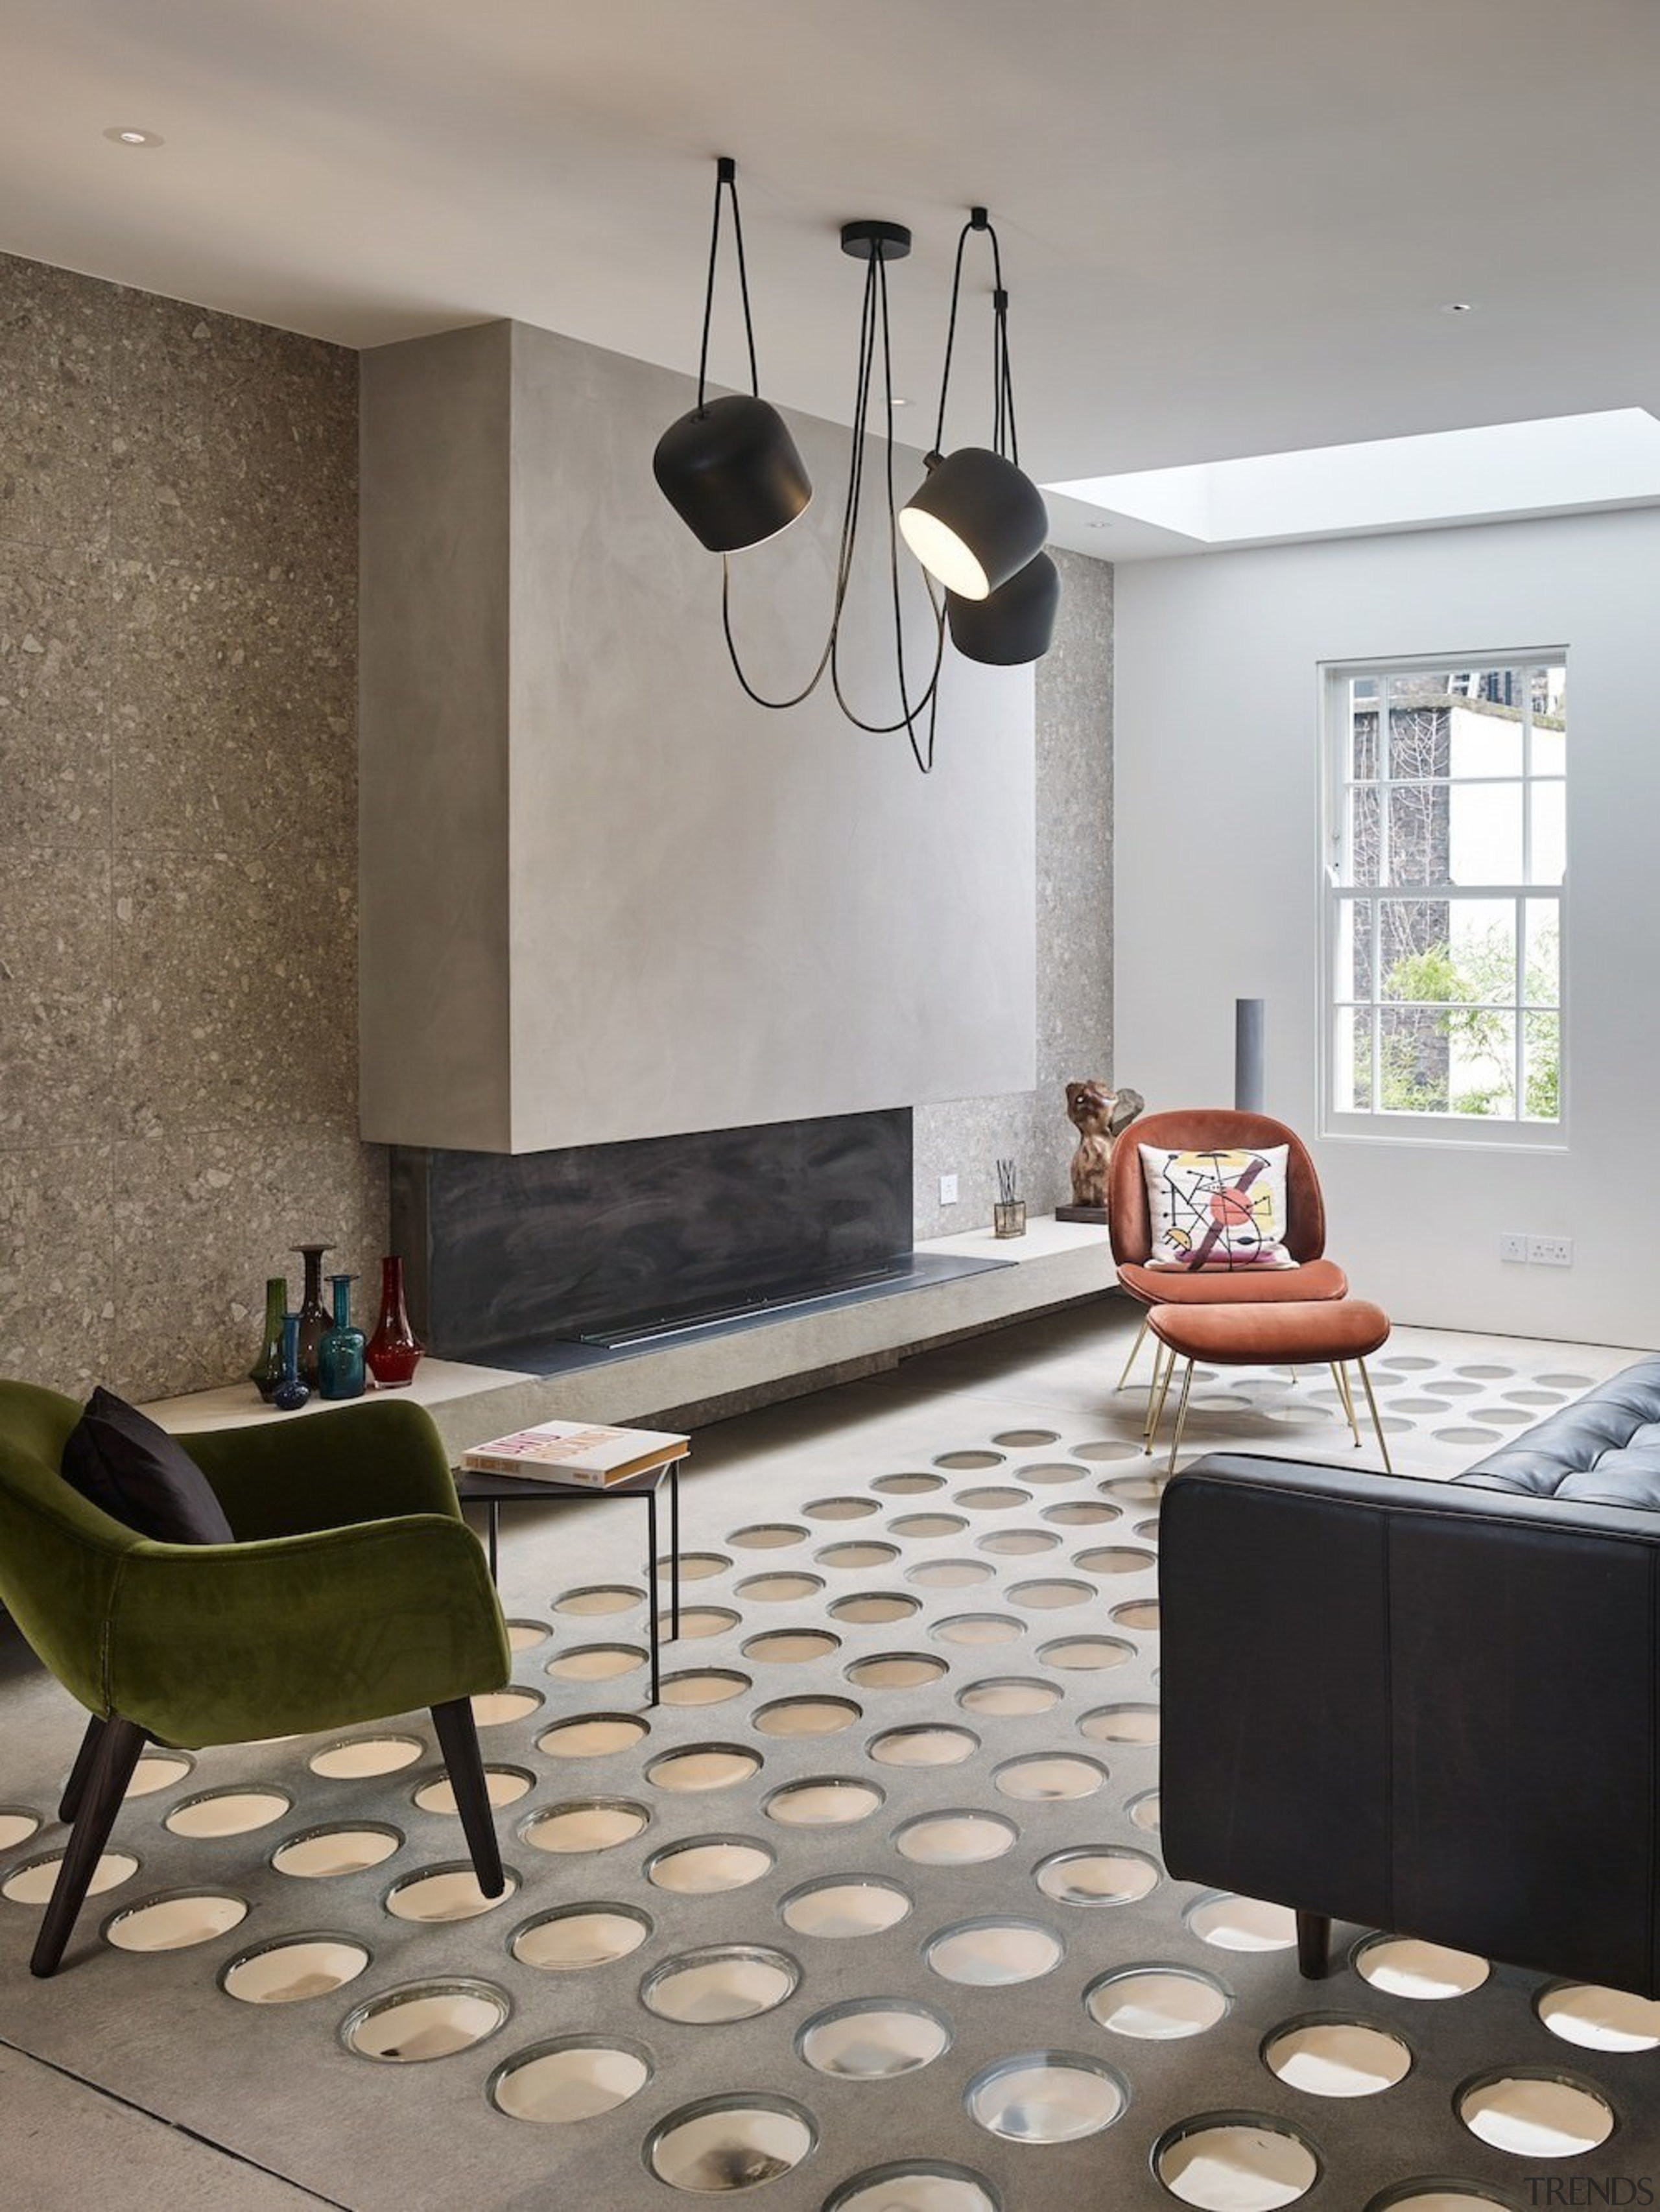 Andy Martin Architecture – Renovation in London - ceiling, floor, flooring, furniture, home, interior design, light fixture, living room, room, table, wall, gray